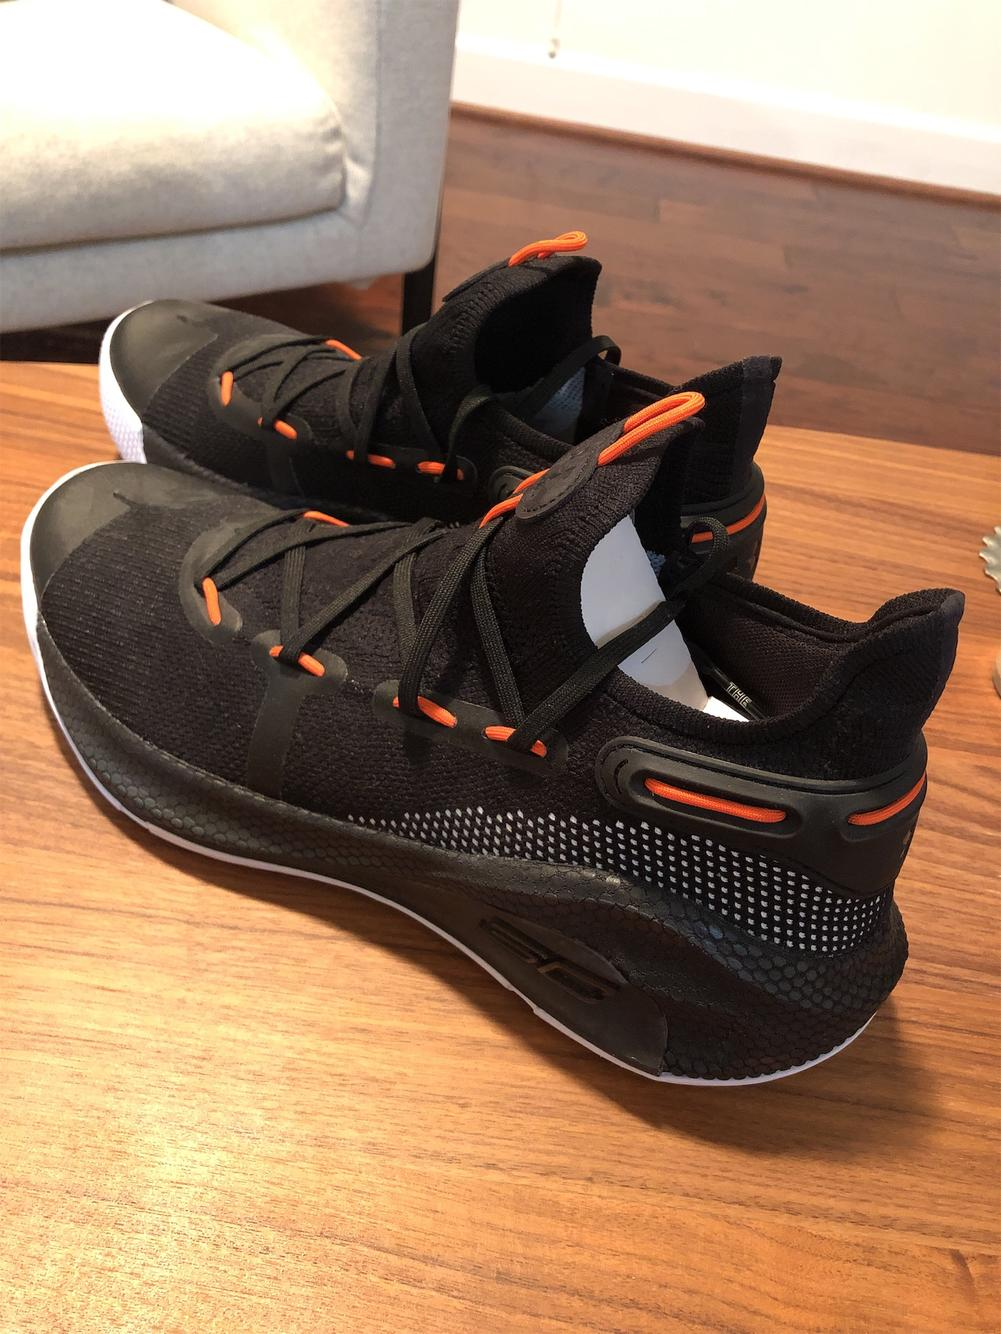 Under Armour Curry 2 Size 11.5